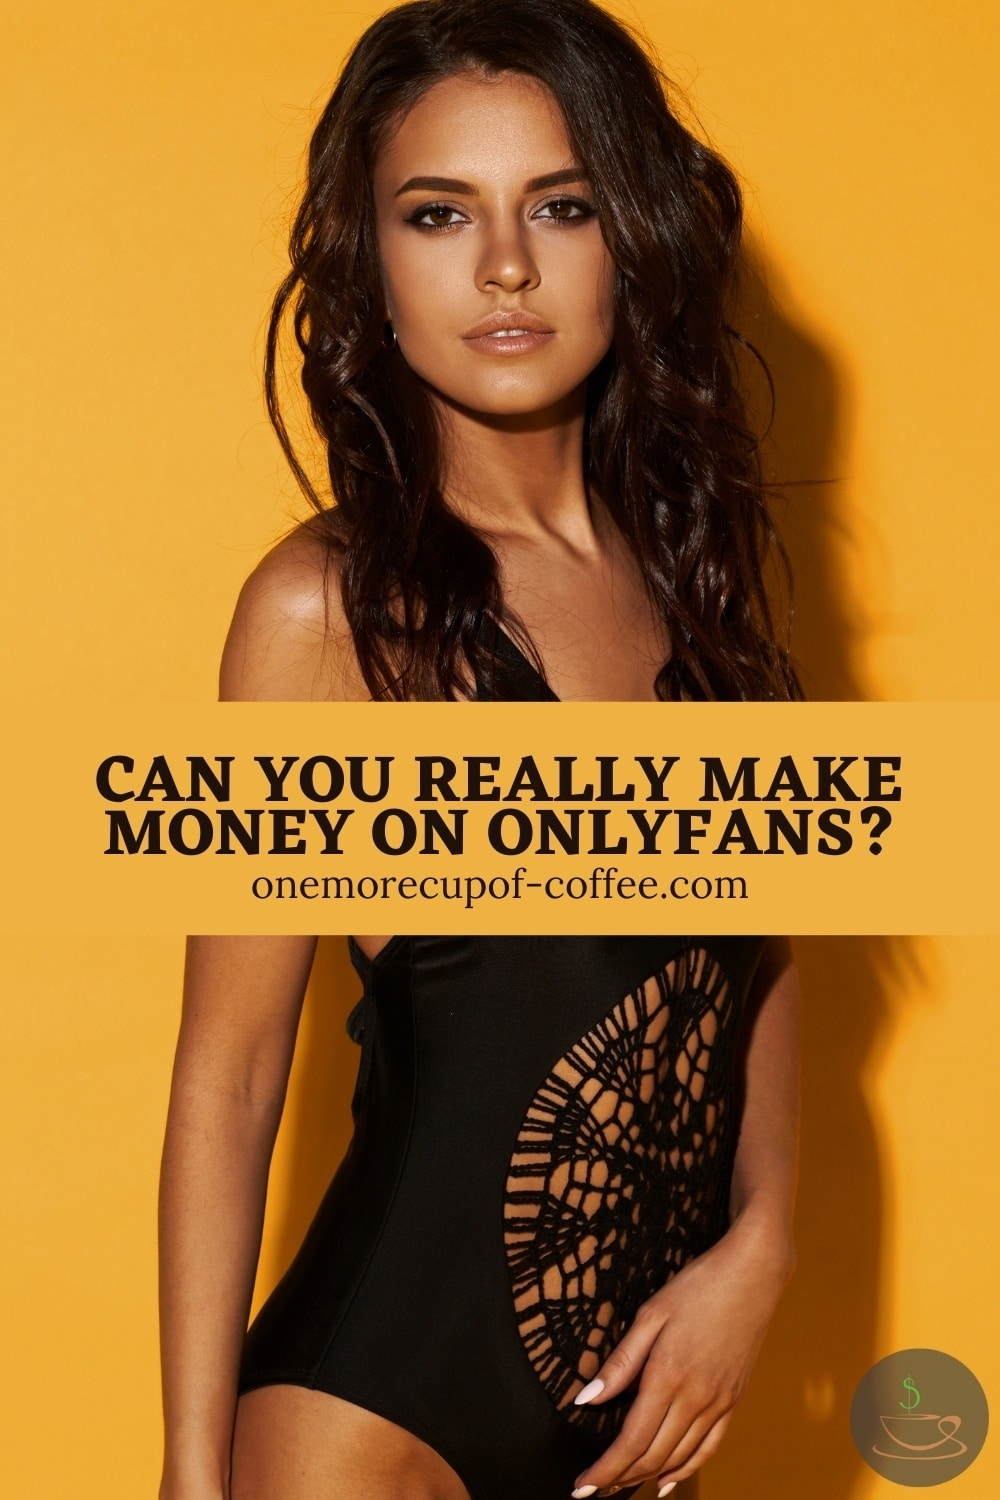 Long-haired woman in black lacy one piece swimsuit posing against a yellow background; with text overlay